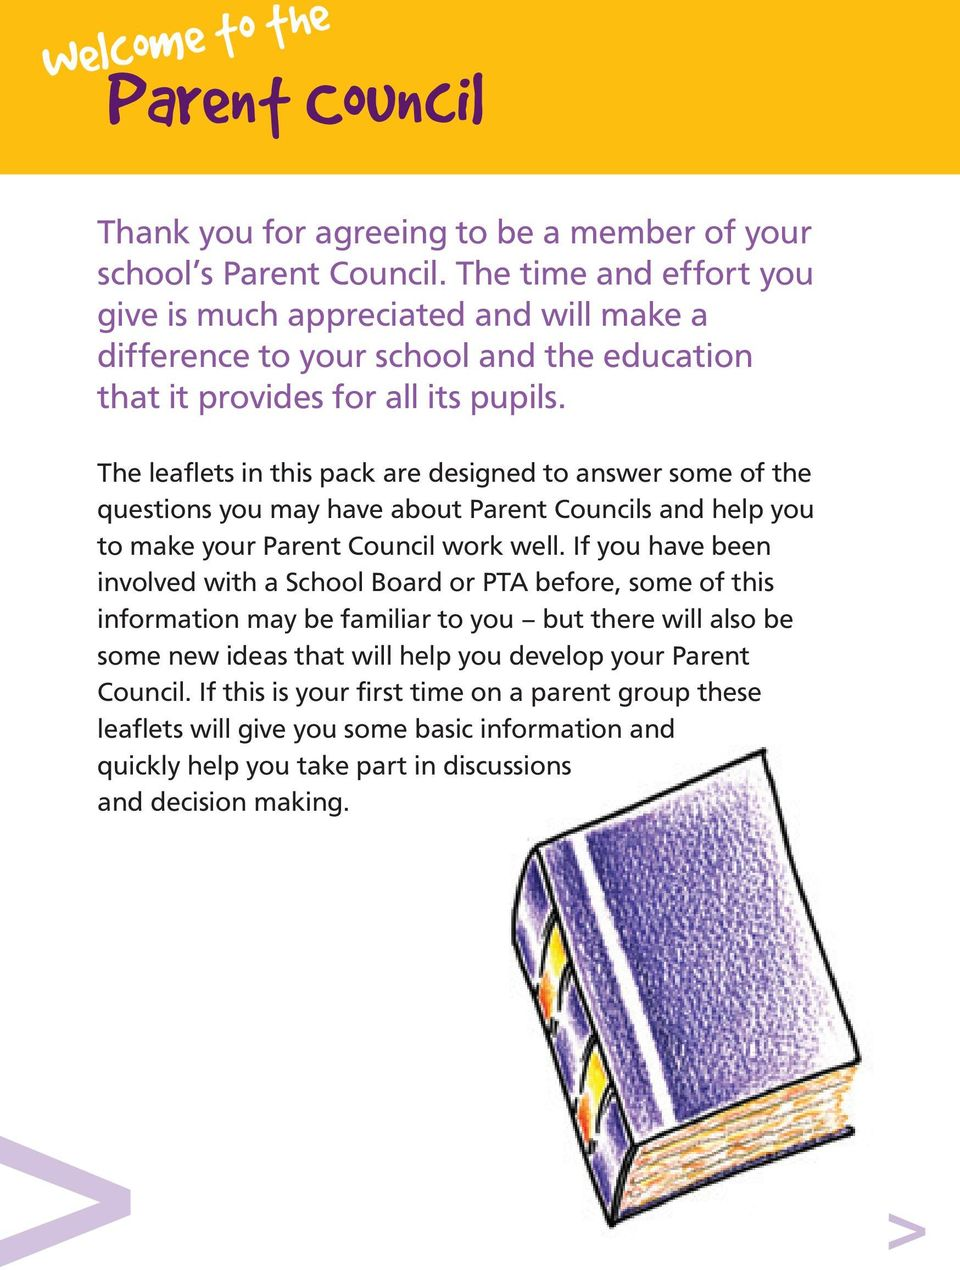 The leaflets in this pack are designed to answer some of the questions you may have about Parent Councils and help you to make your Parent Council work well.